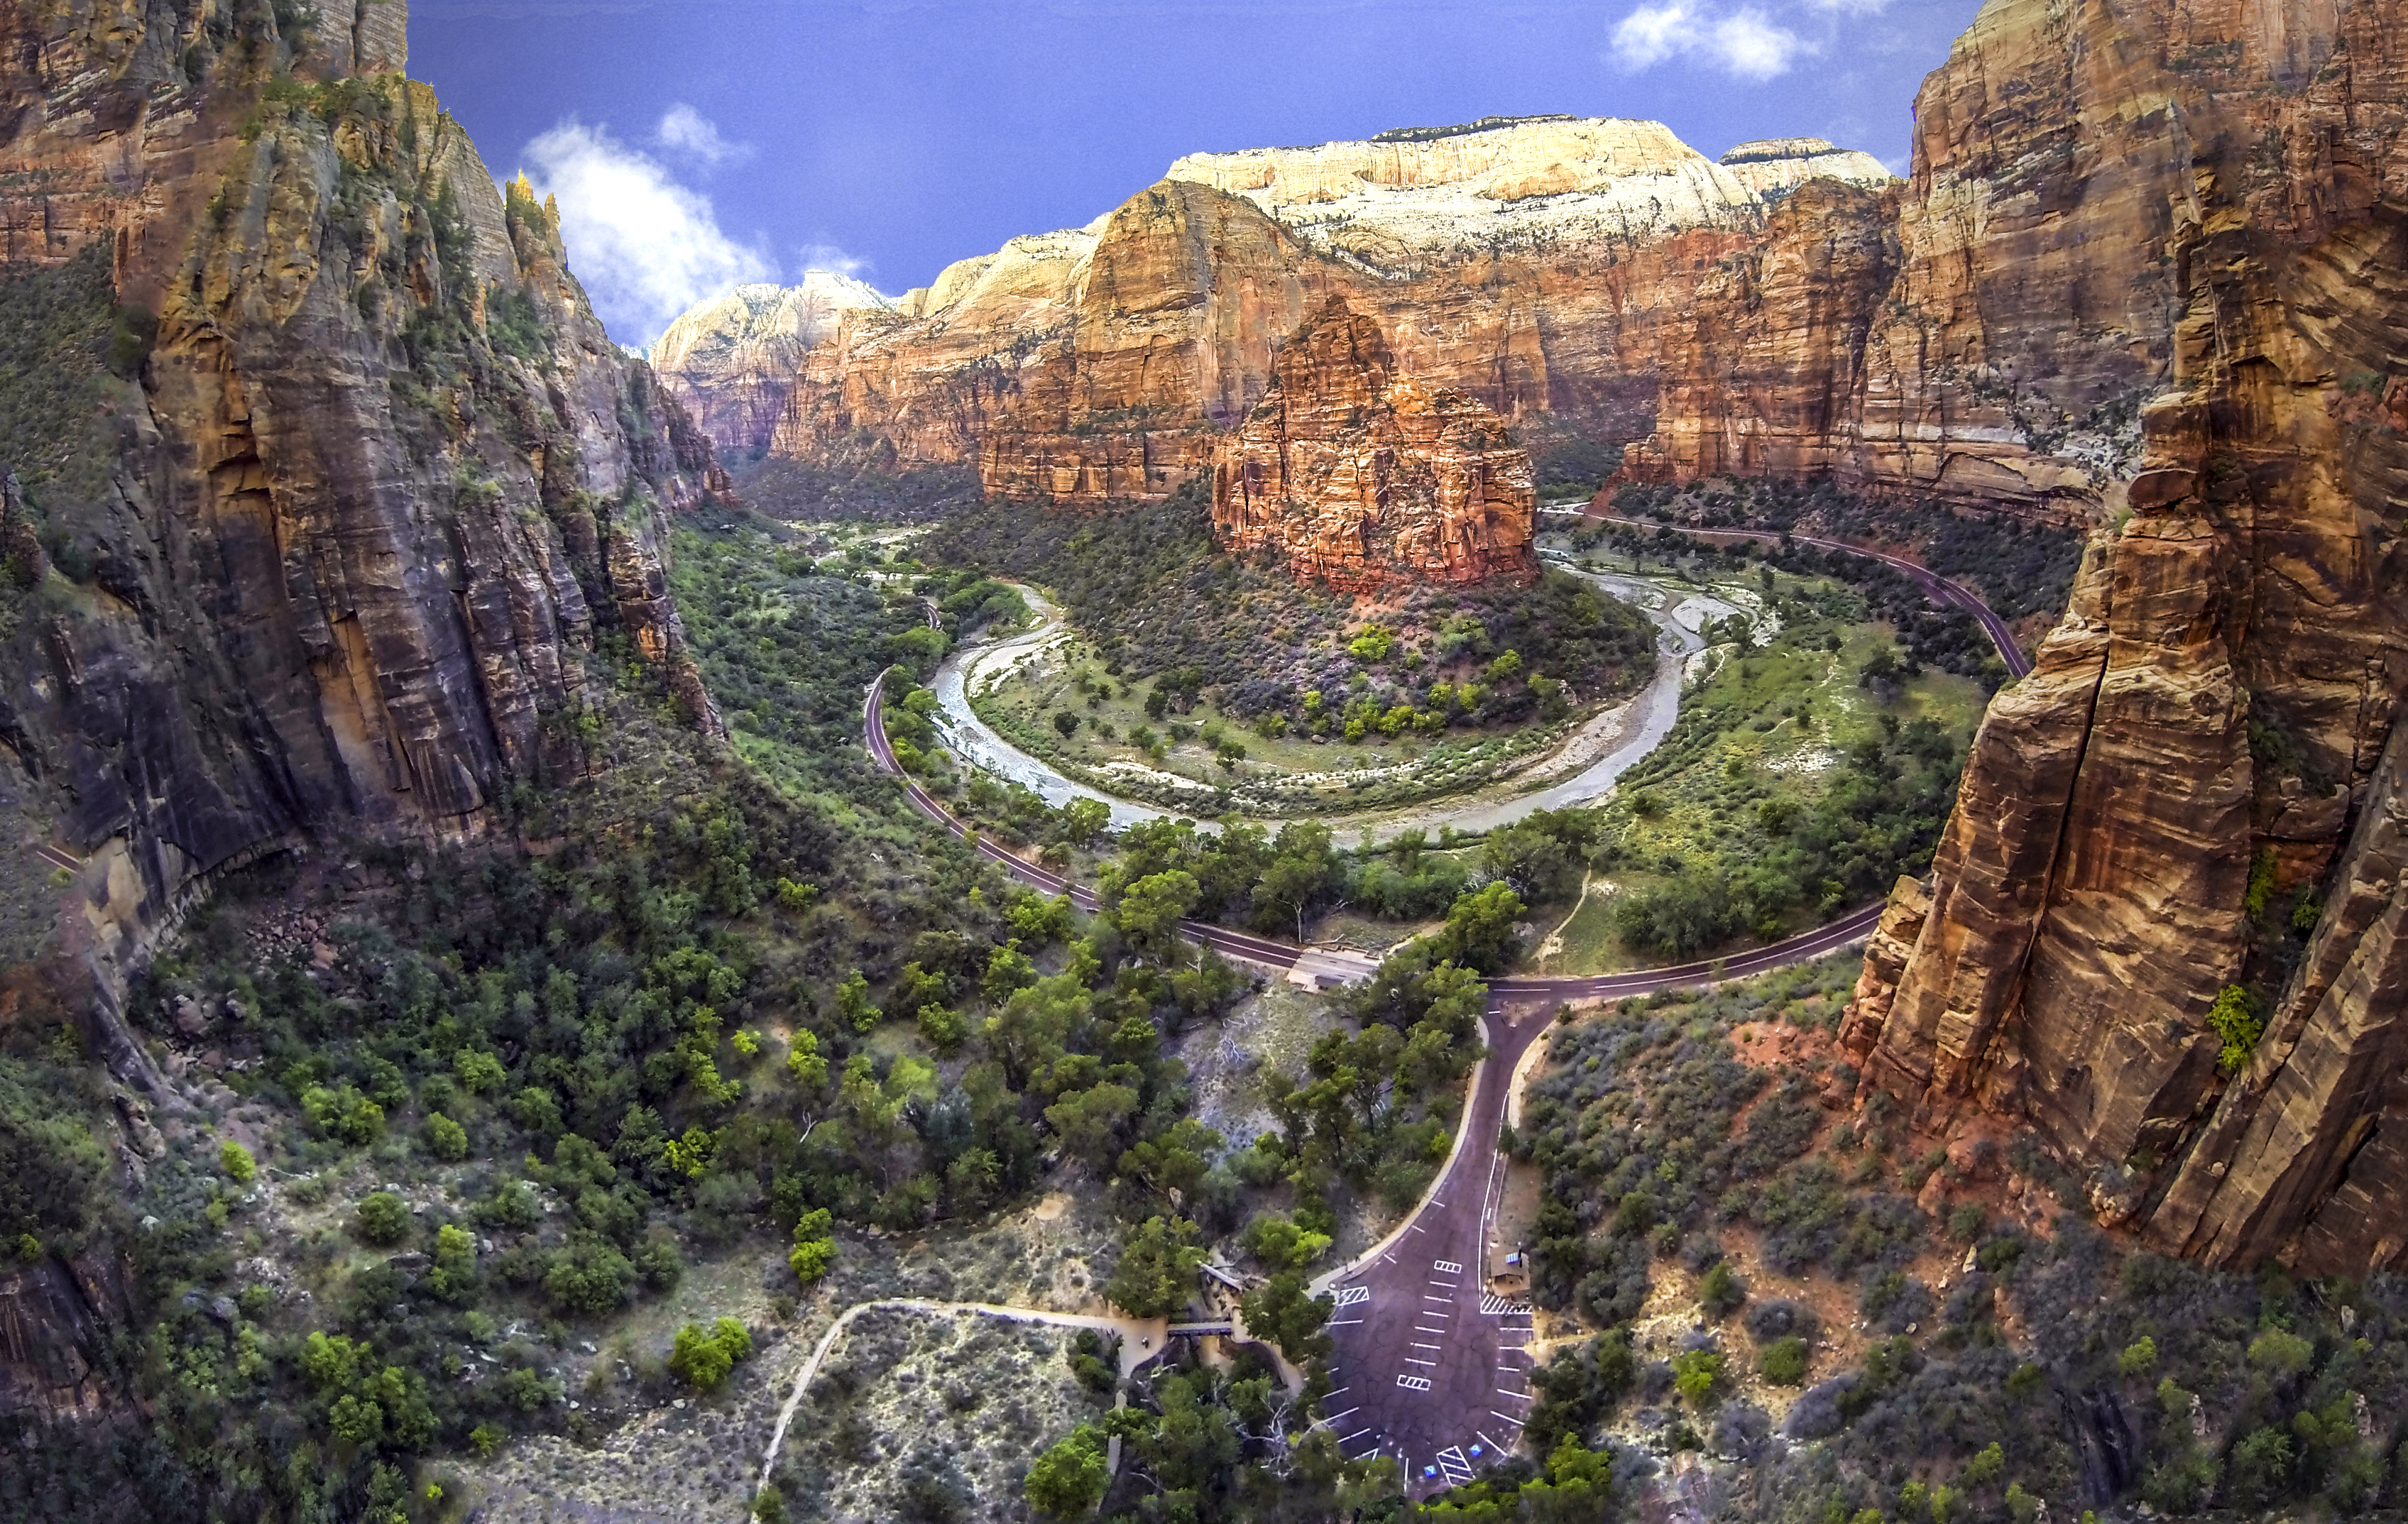 Weeping Rock, Zion, Utah, USA | Dronestagram: www.dronestagr.am/weeping-rock-zion-utah-usa